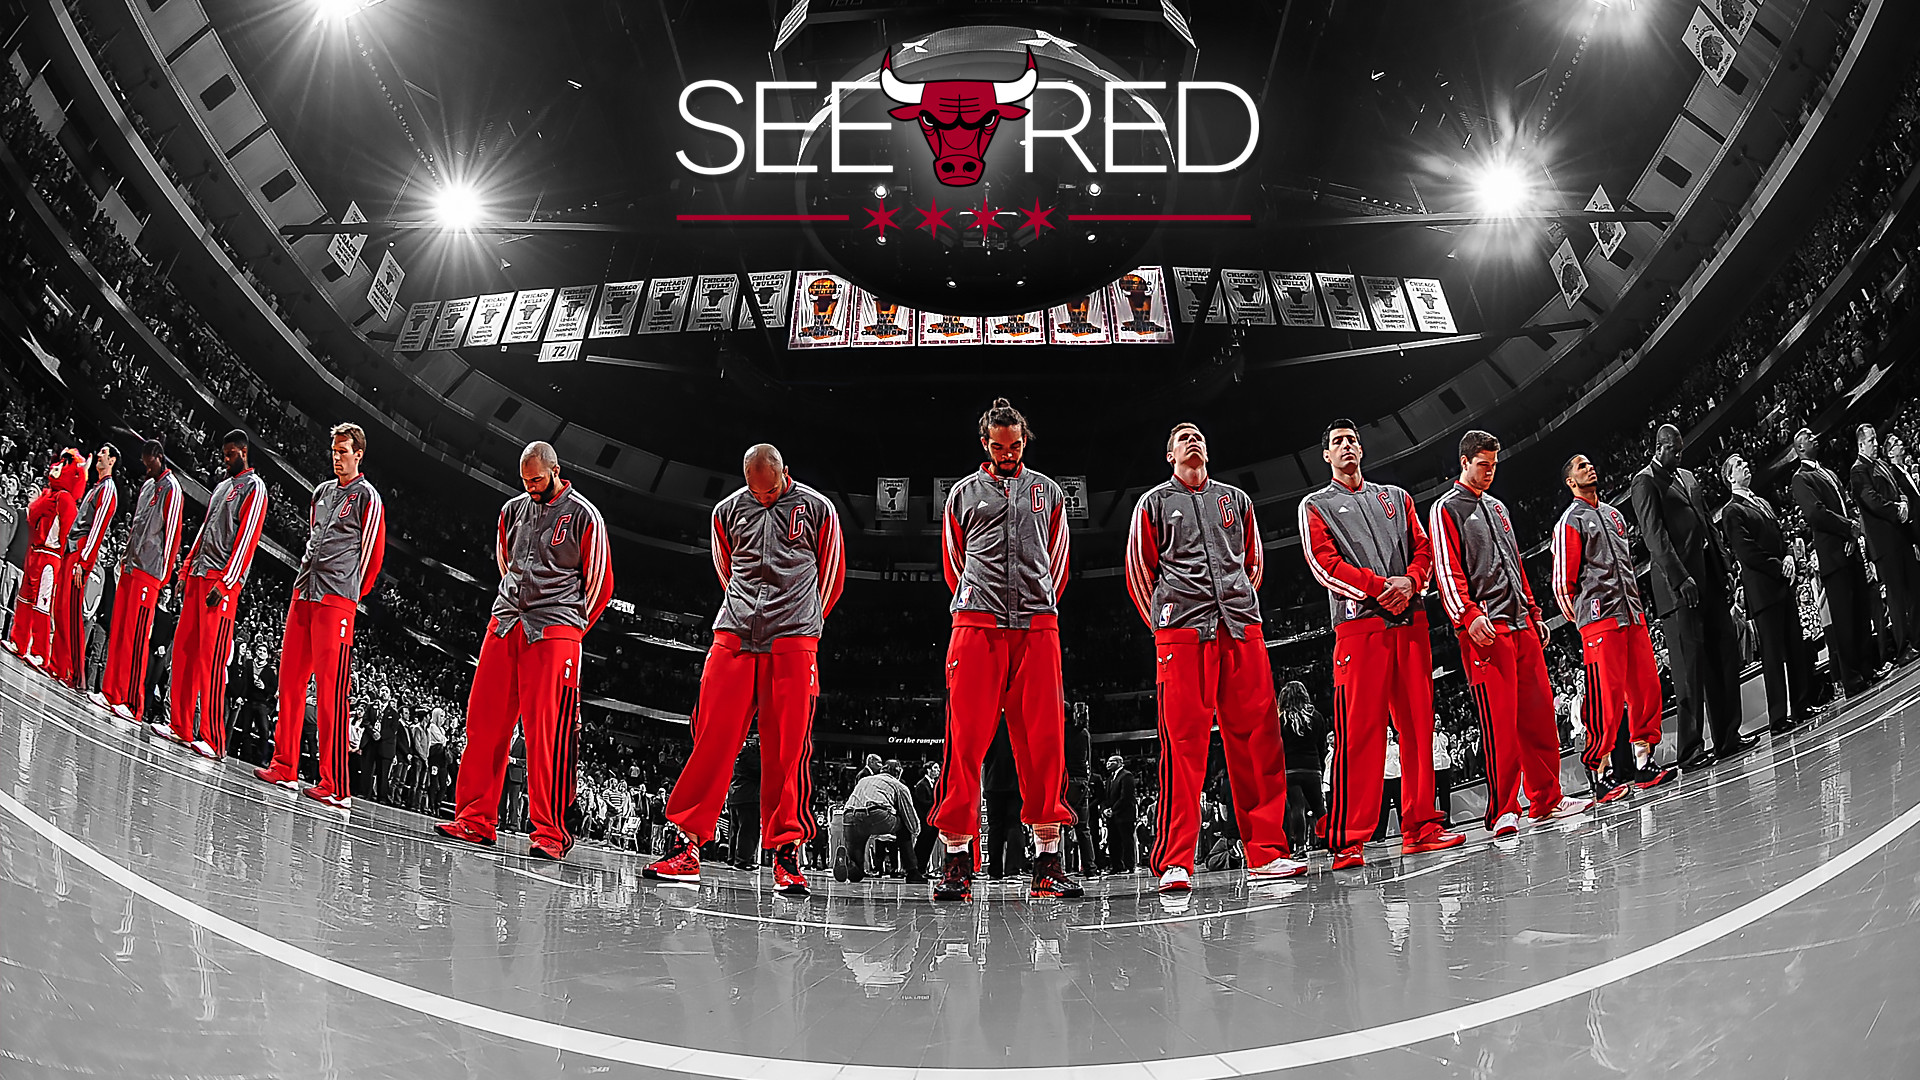 1920x1080 chicago bulls pictures for desktop